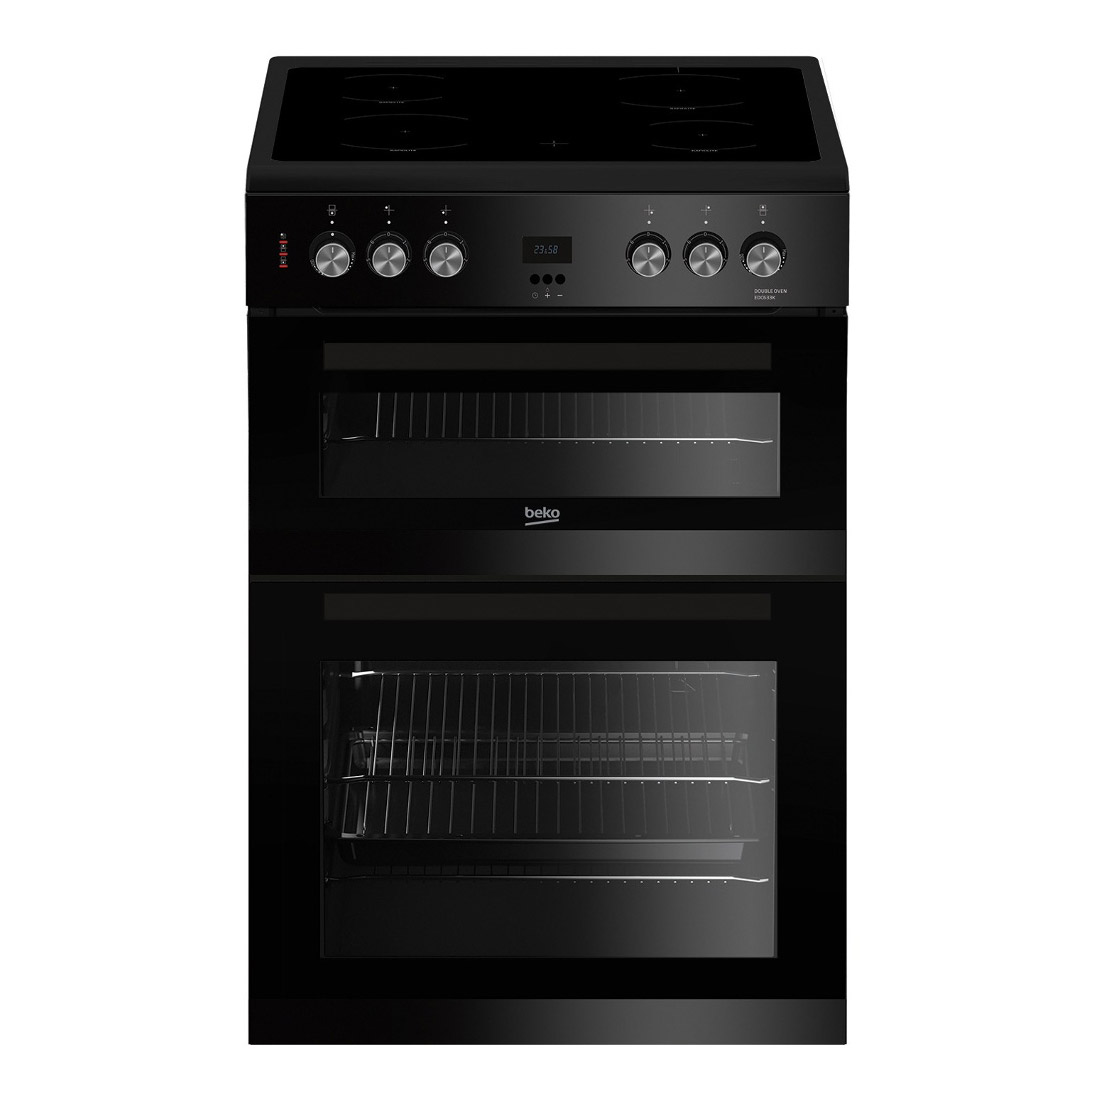 beko edc633k 60cm electric cooker in black double oven. Black Bedroom Furniture Sets. Home Design Ideas